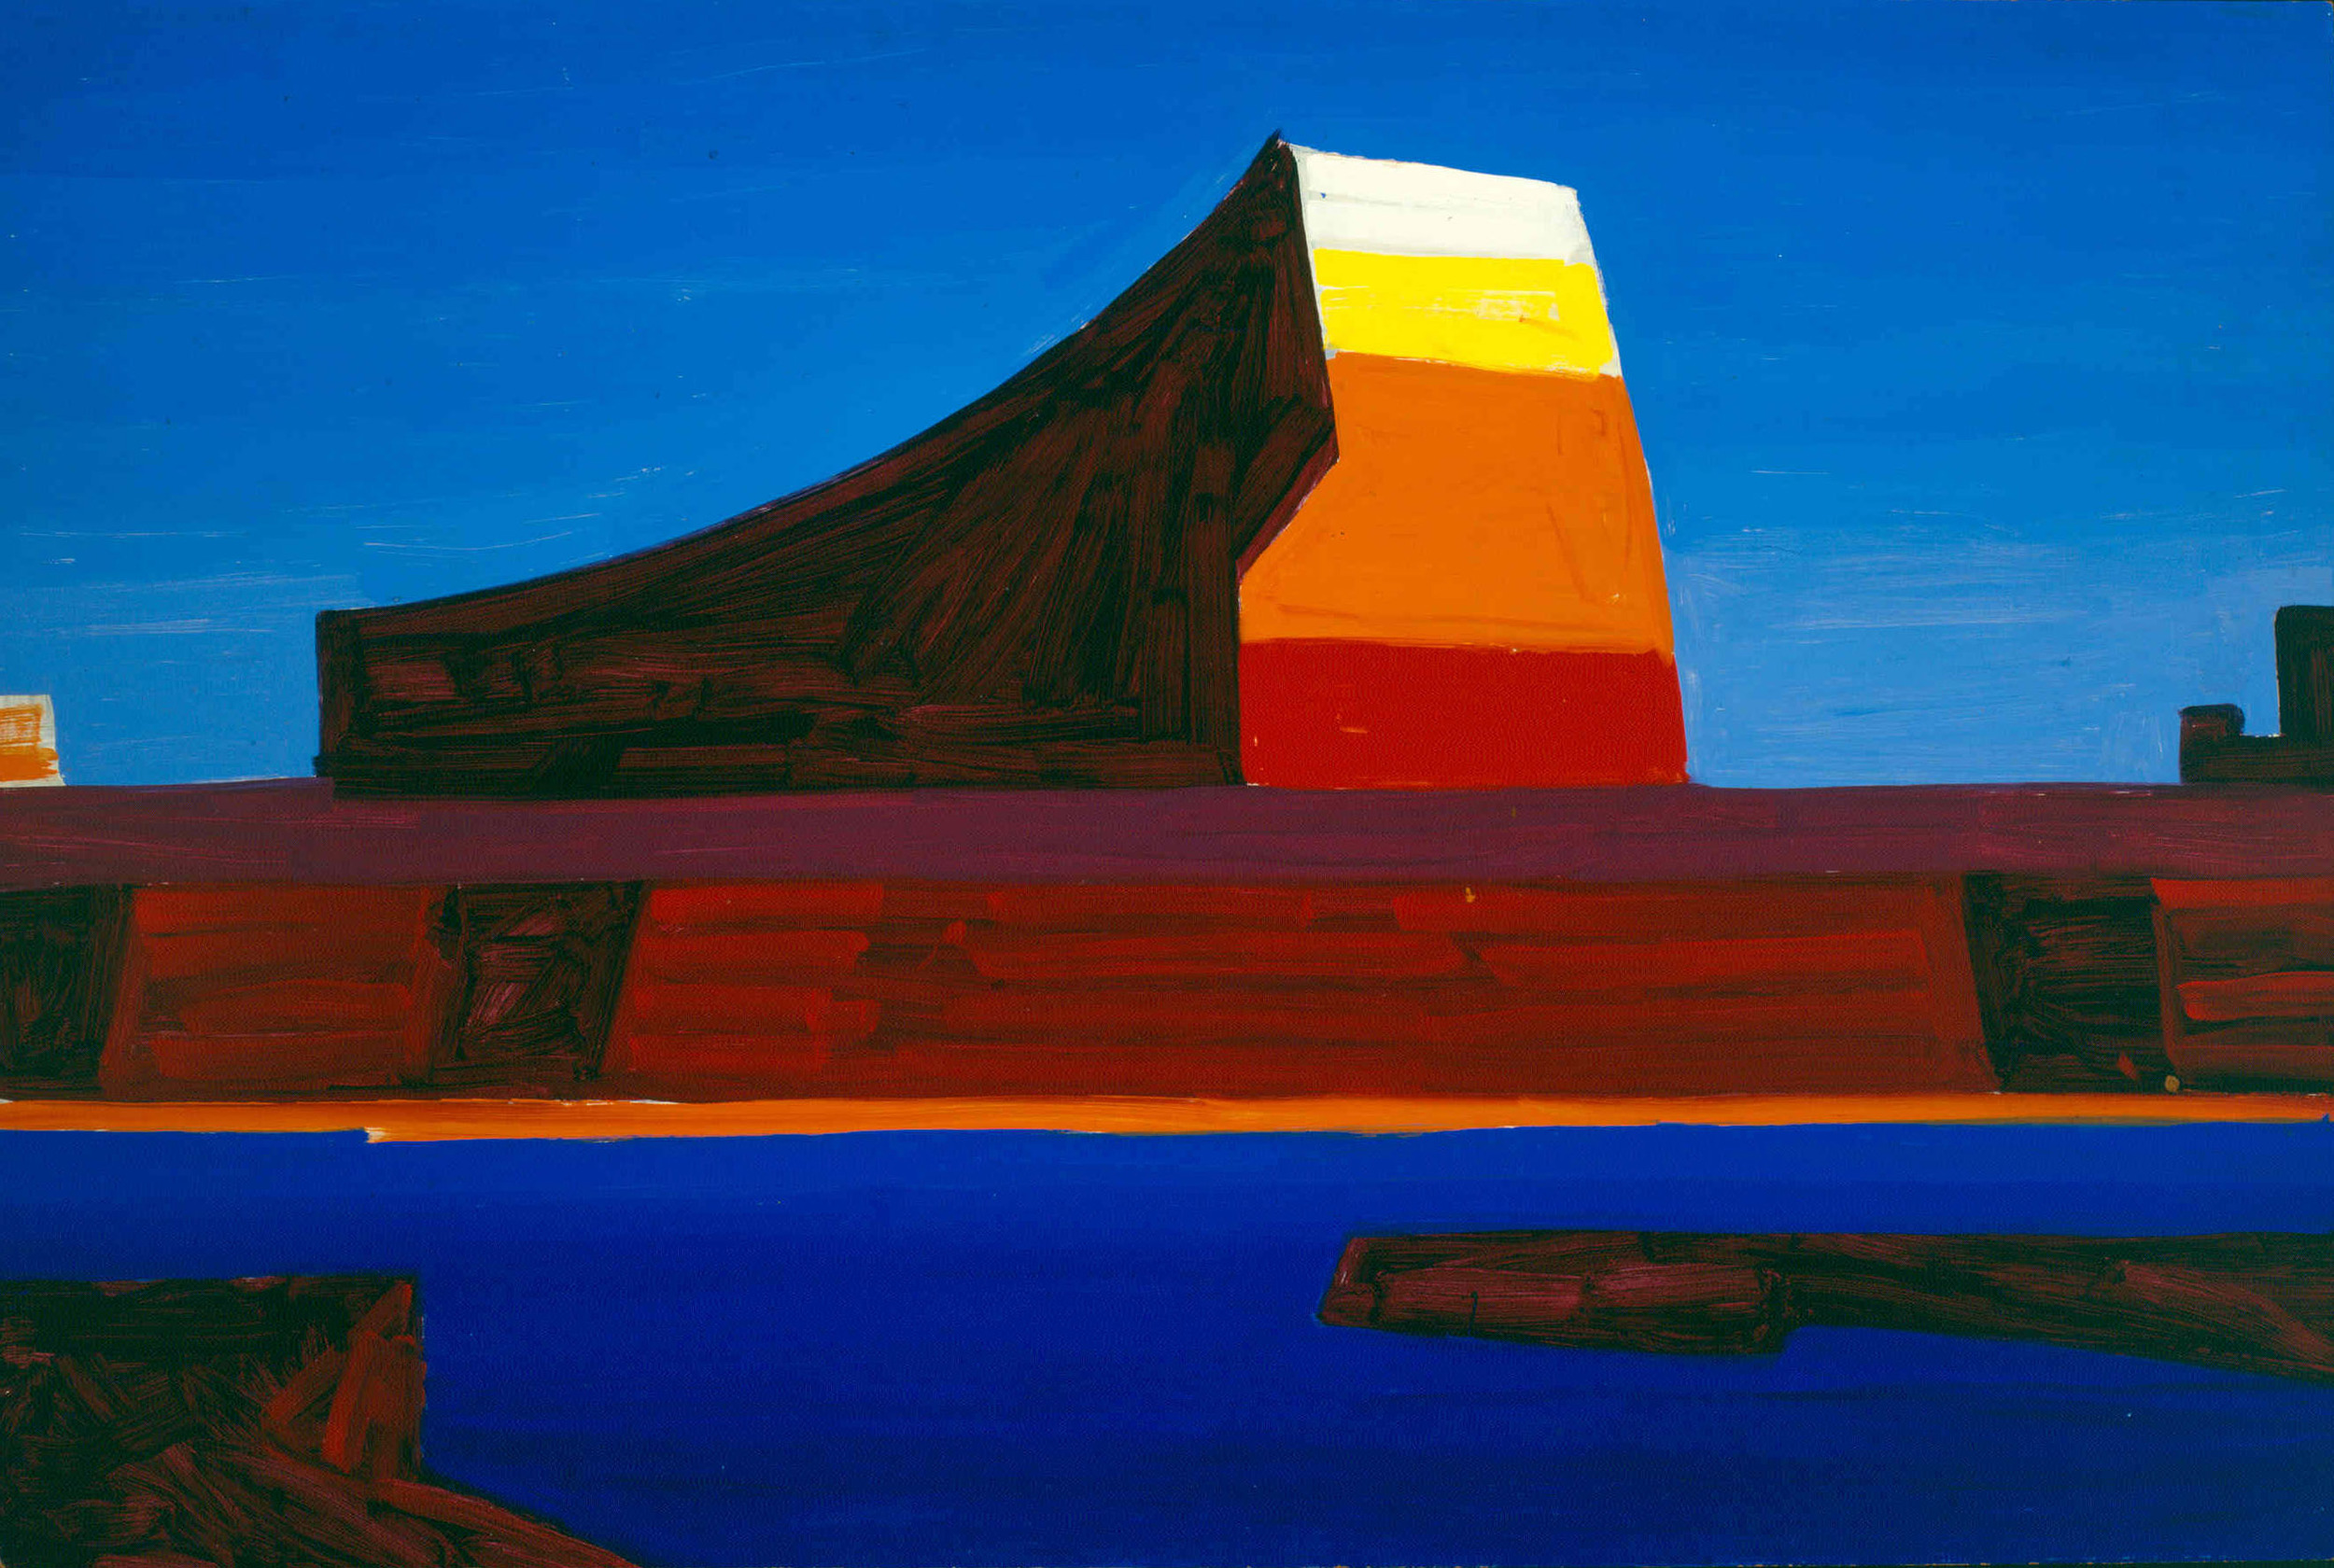 Wayne County III (Lake Powell, Utah)   / Oil on Masonite / 35 x 52.875 in.